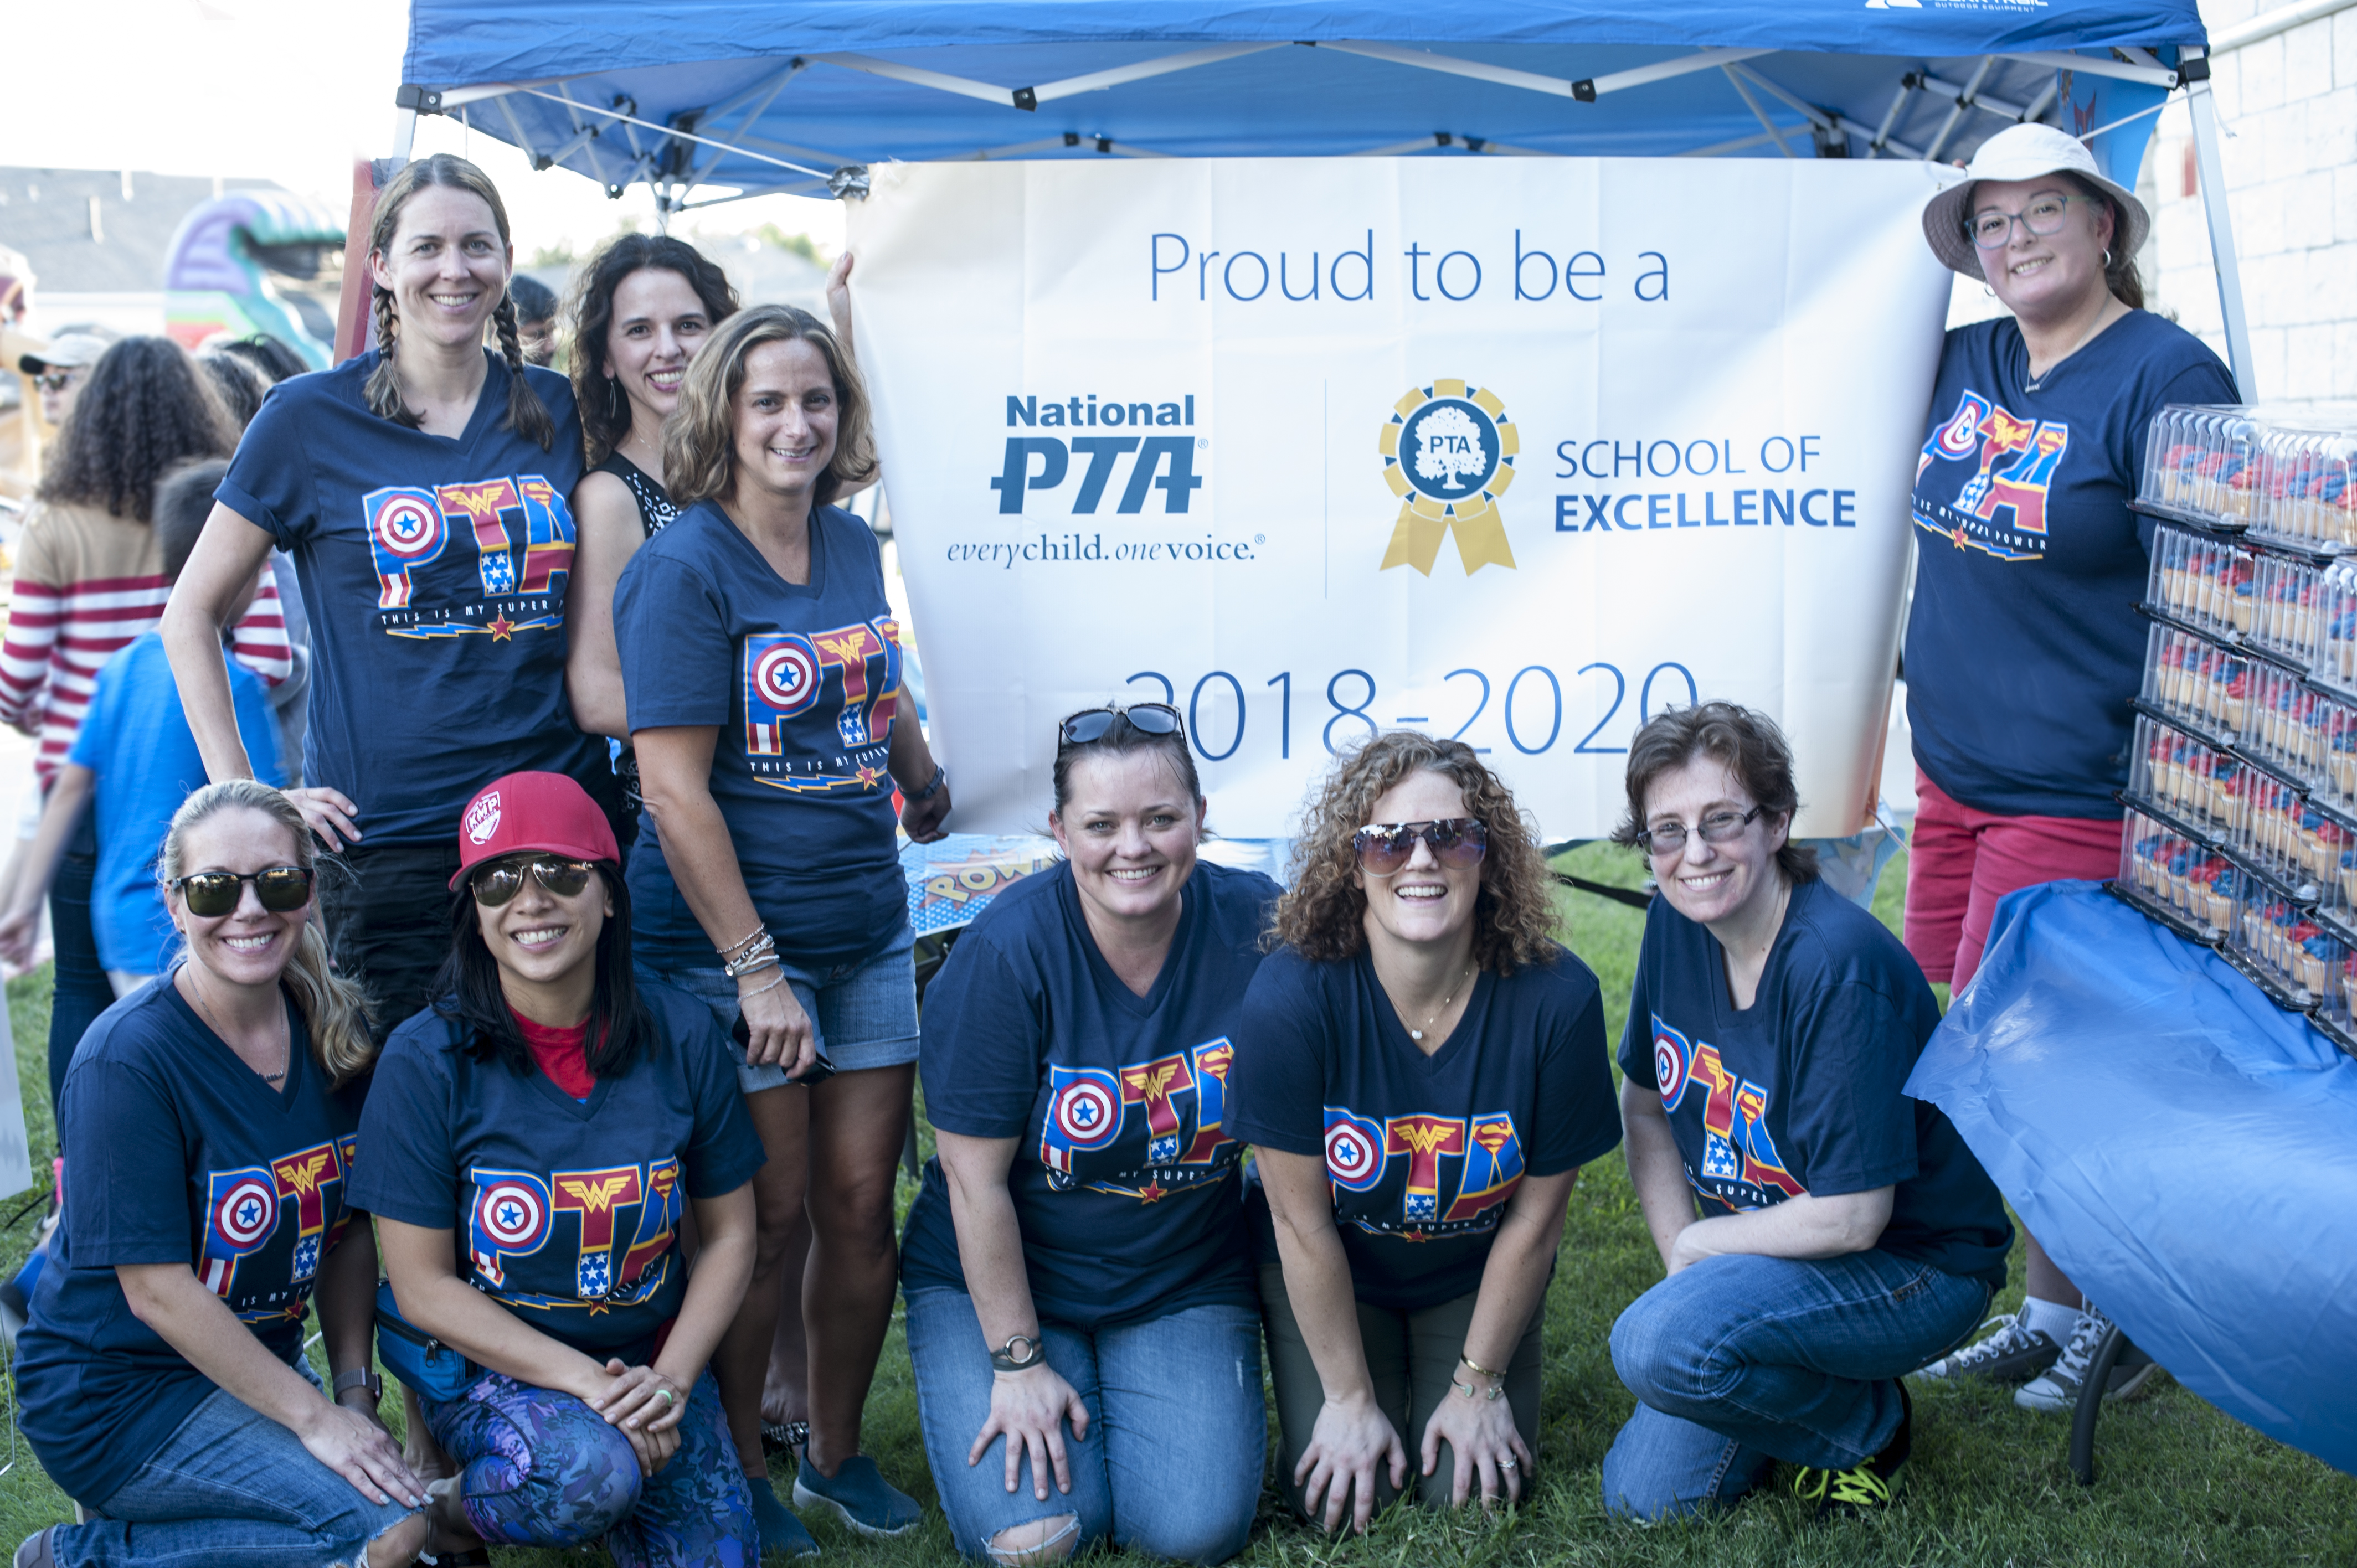 Haun PTA president and officers with sign Proud to be School of Excellence